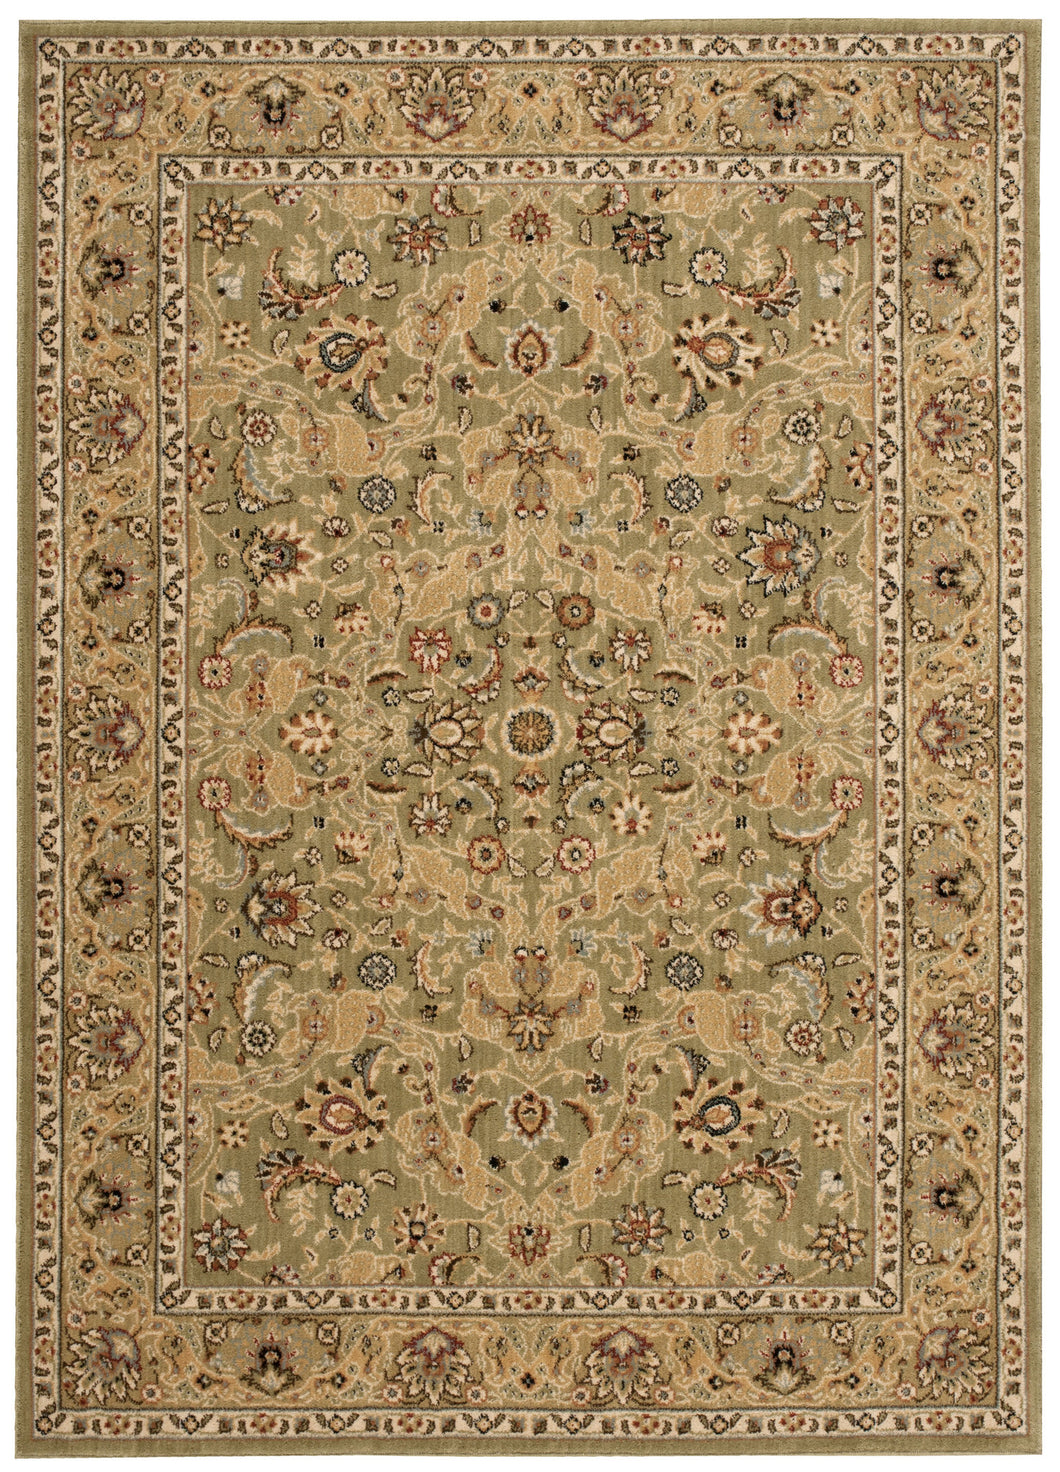 Kathy Ireland Lumiere Royal Countryside Sage Area Rug By Nourison KI600 SAG